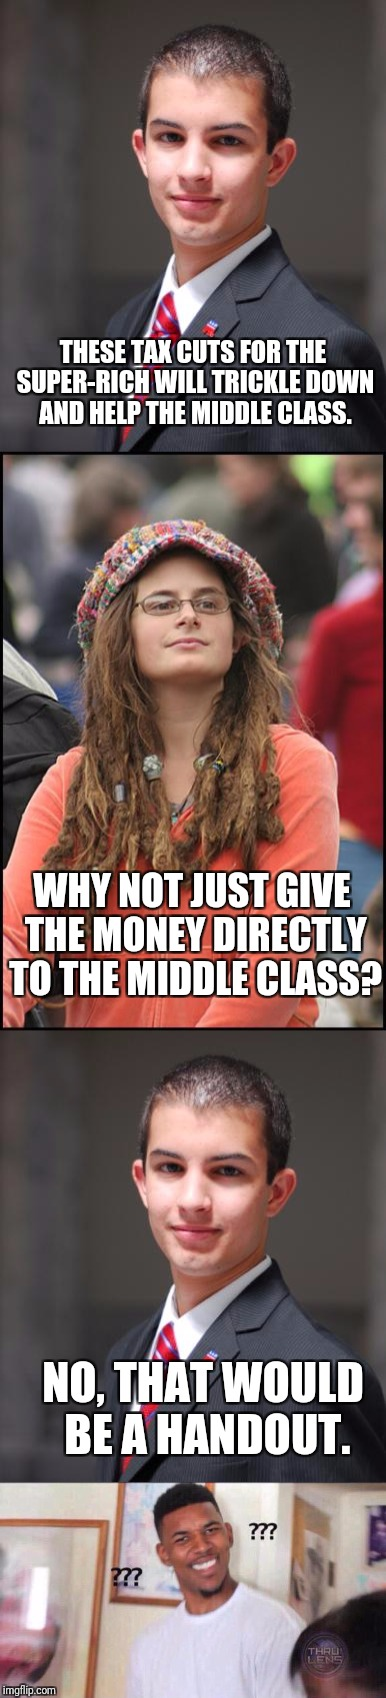 TRICKLE UP ECONOMICS? | THESE TAX CUTS FOR THE SUPER-RICH WILL TRICKLE DOWN AND HELP THE MIDDLE CLASS. WHY NOT JUST GIVE THE MONEY DIRECTLY TO THE MIDDLE CLASS? NO, | image tagged in conservative,college liberal | made w/ Imgflip meme maker